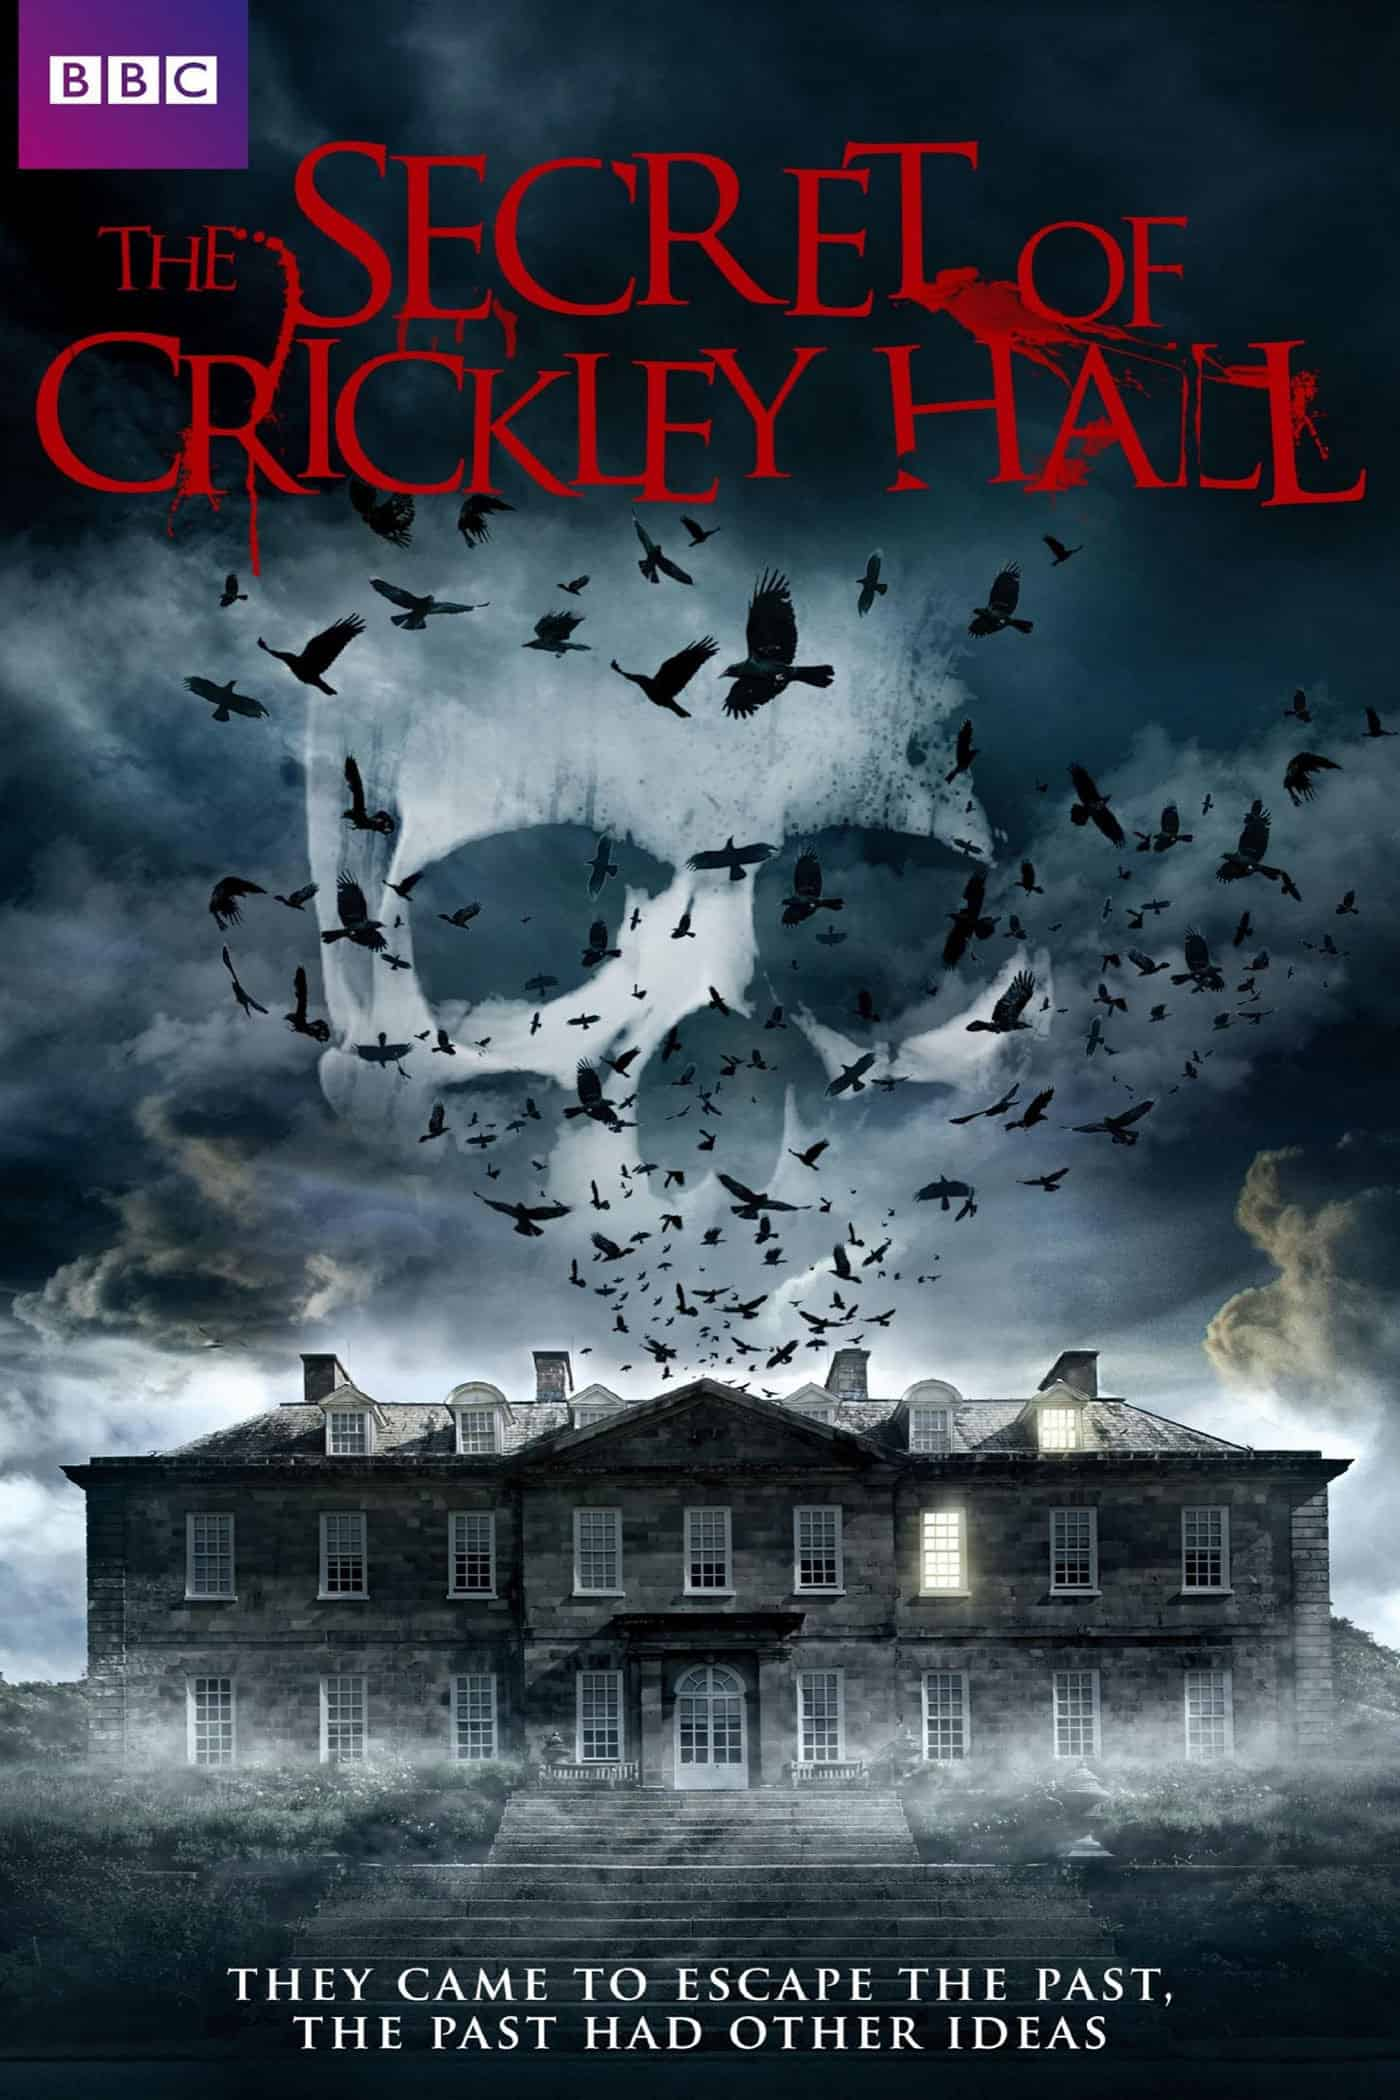 The Secret of Crickley Hall, 2012